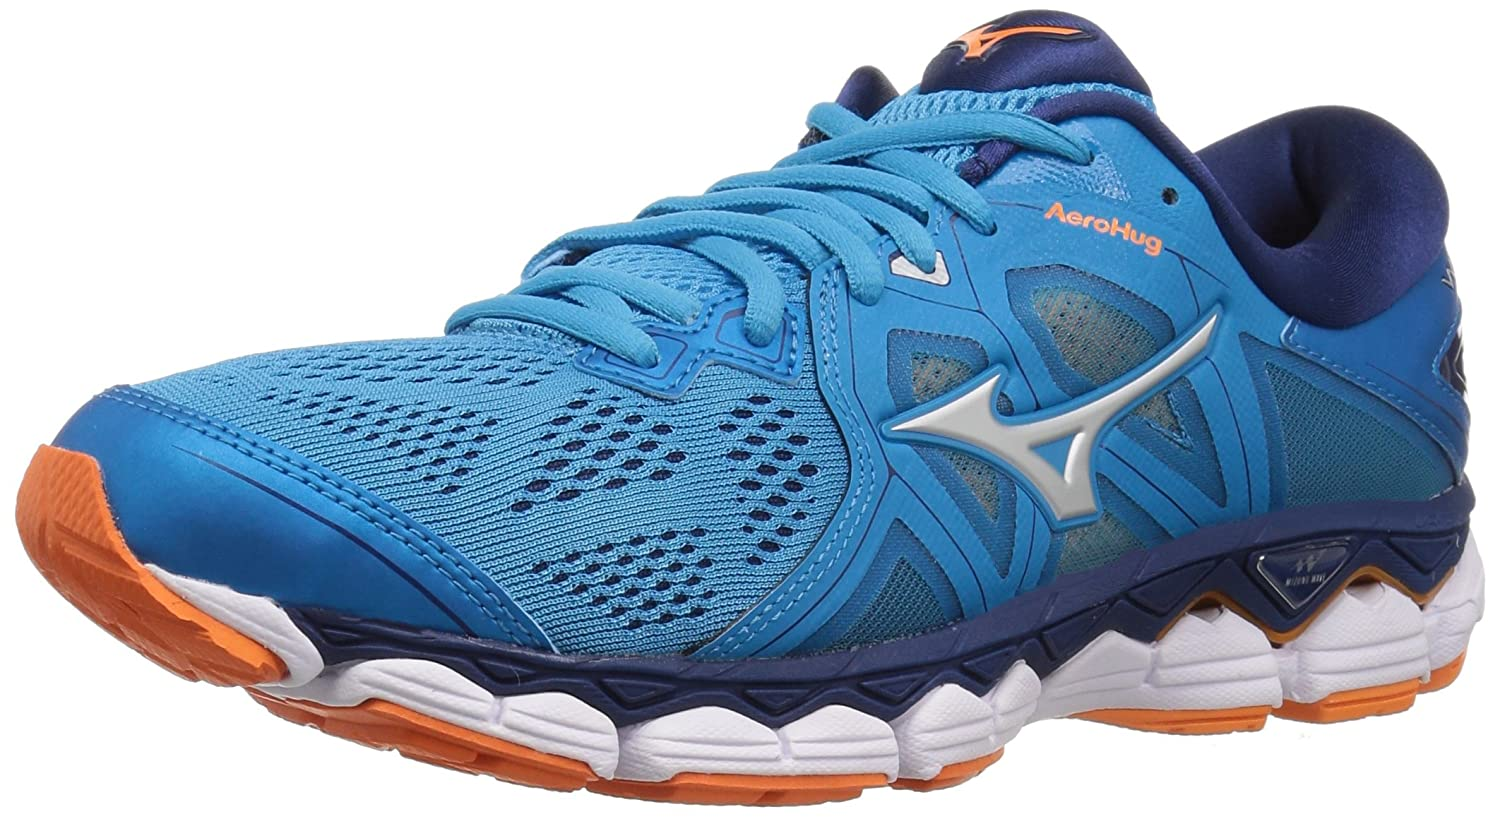 Mizuno Women's Wave Sky 2 Running Shoe B076Y7JGQZ 9.5 B(M) US|Hawaiian Ocearn/Birds of Paradise